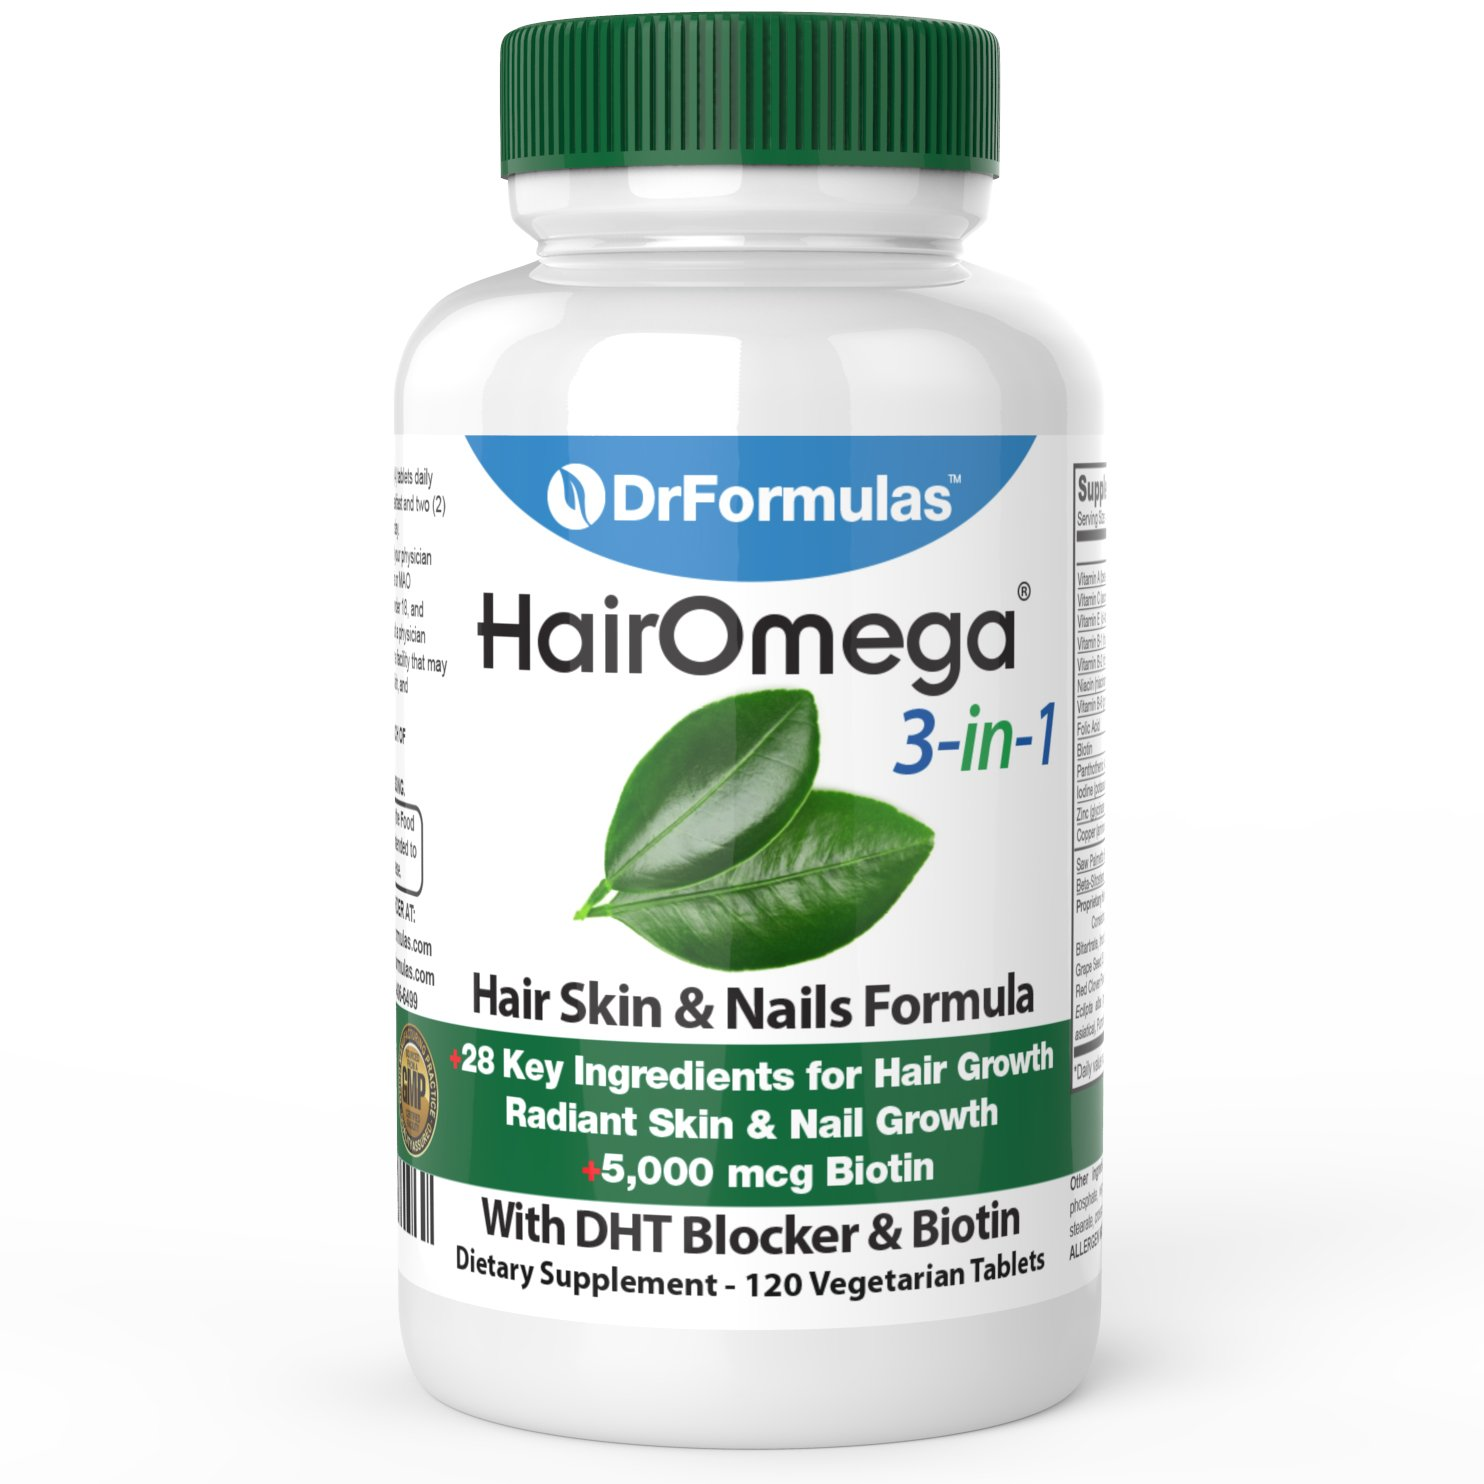 Hairomega 3-in-1 DHT Blocker, Nutrient Providing, Circulation Improving Supplement for Hair Loss or Hair Thinning